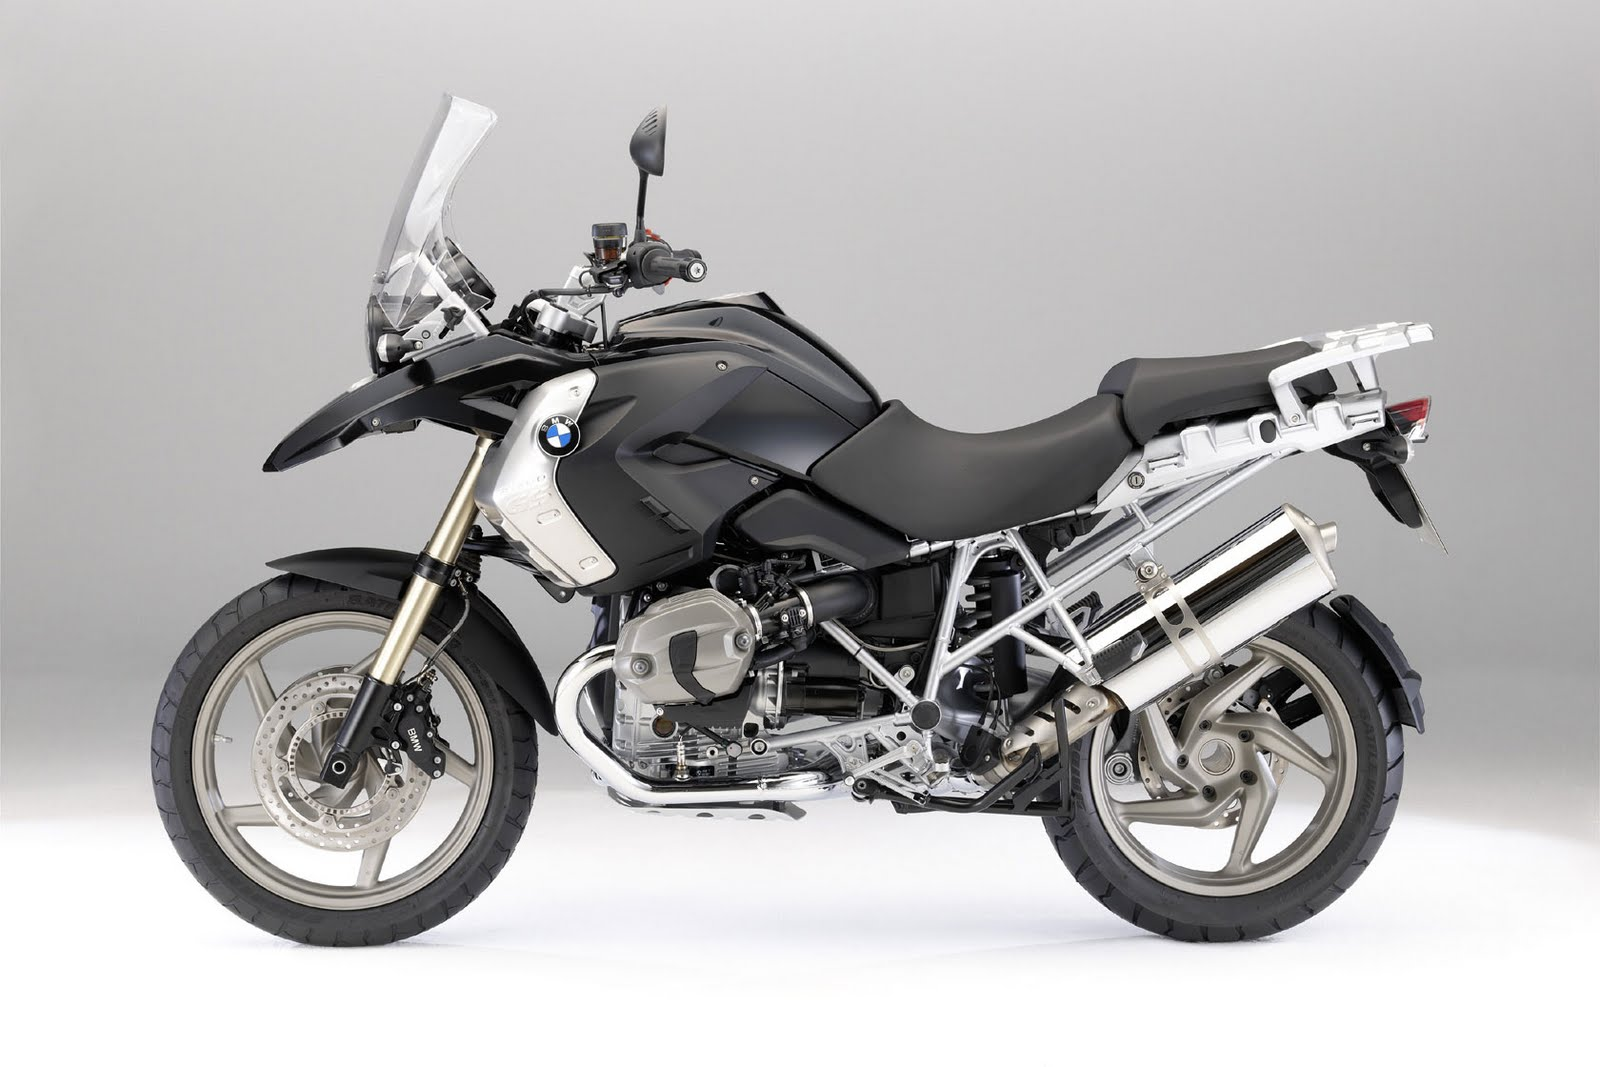 Bmw r1200gs photo - 2